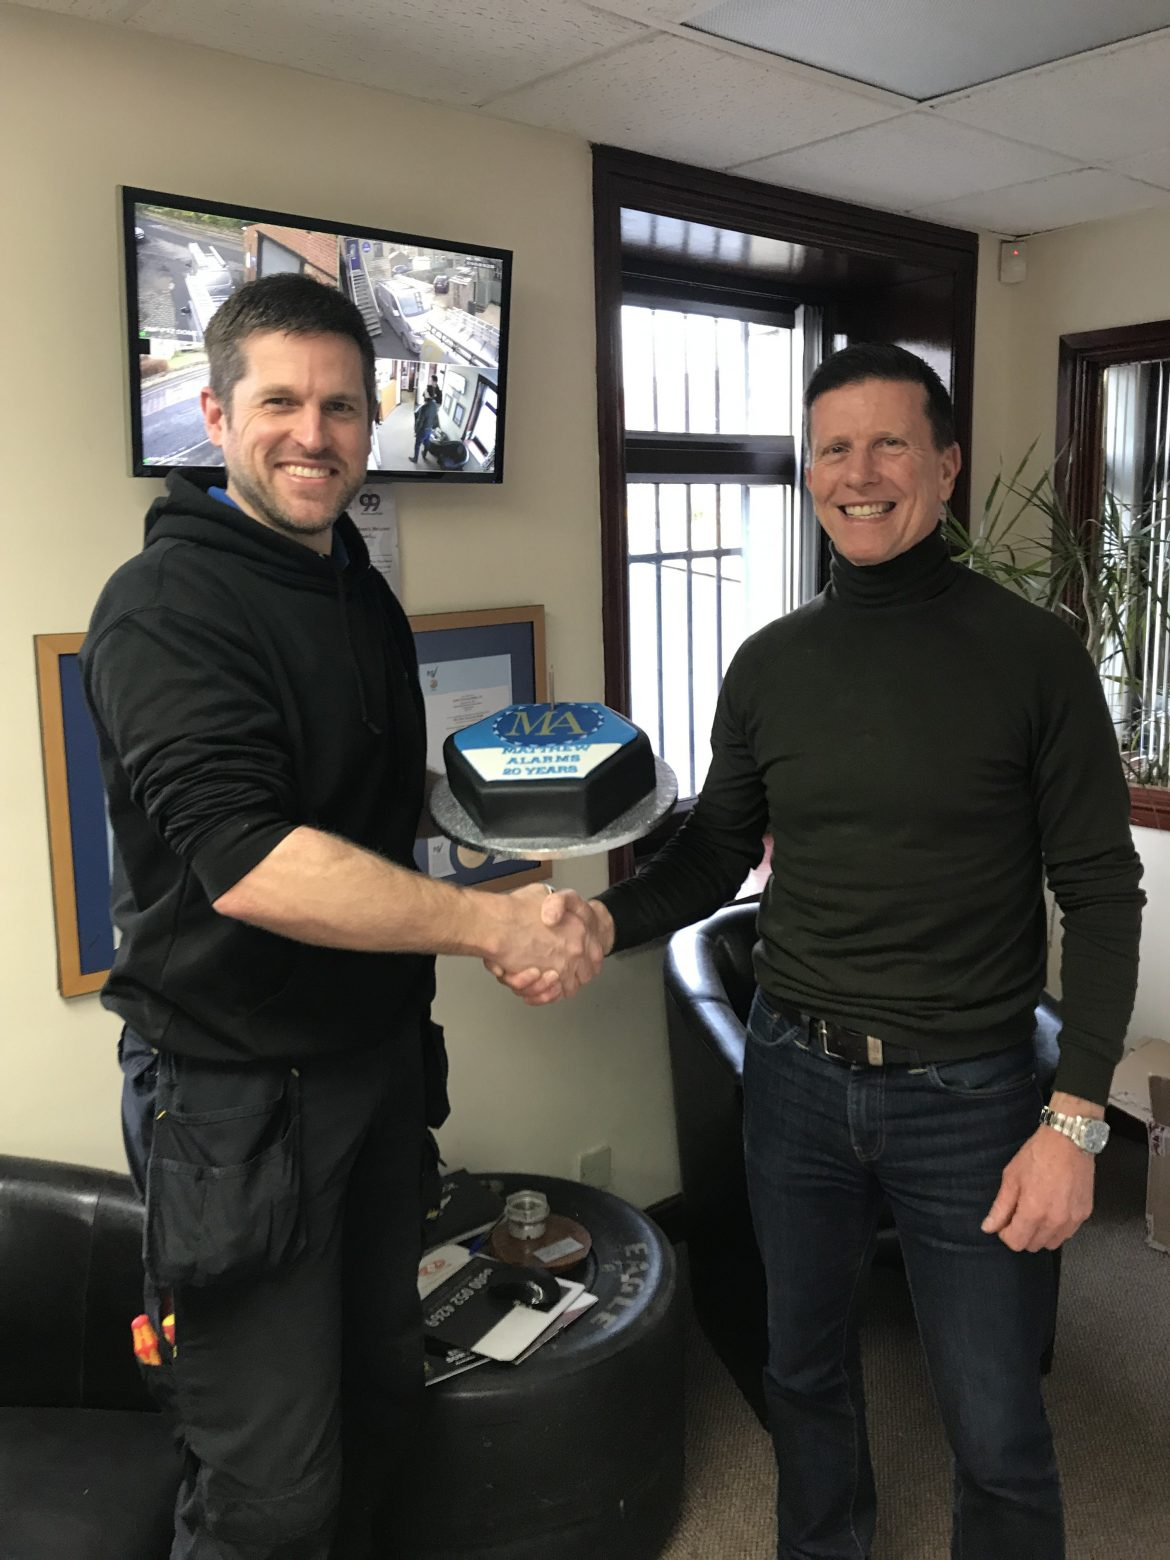 Congratulations to Matthew – 20 years service at Carlton Alarms